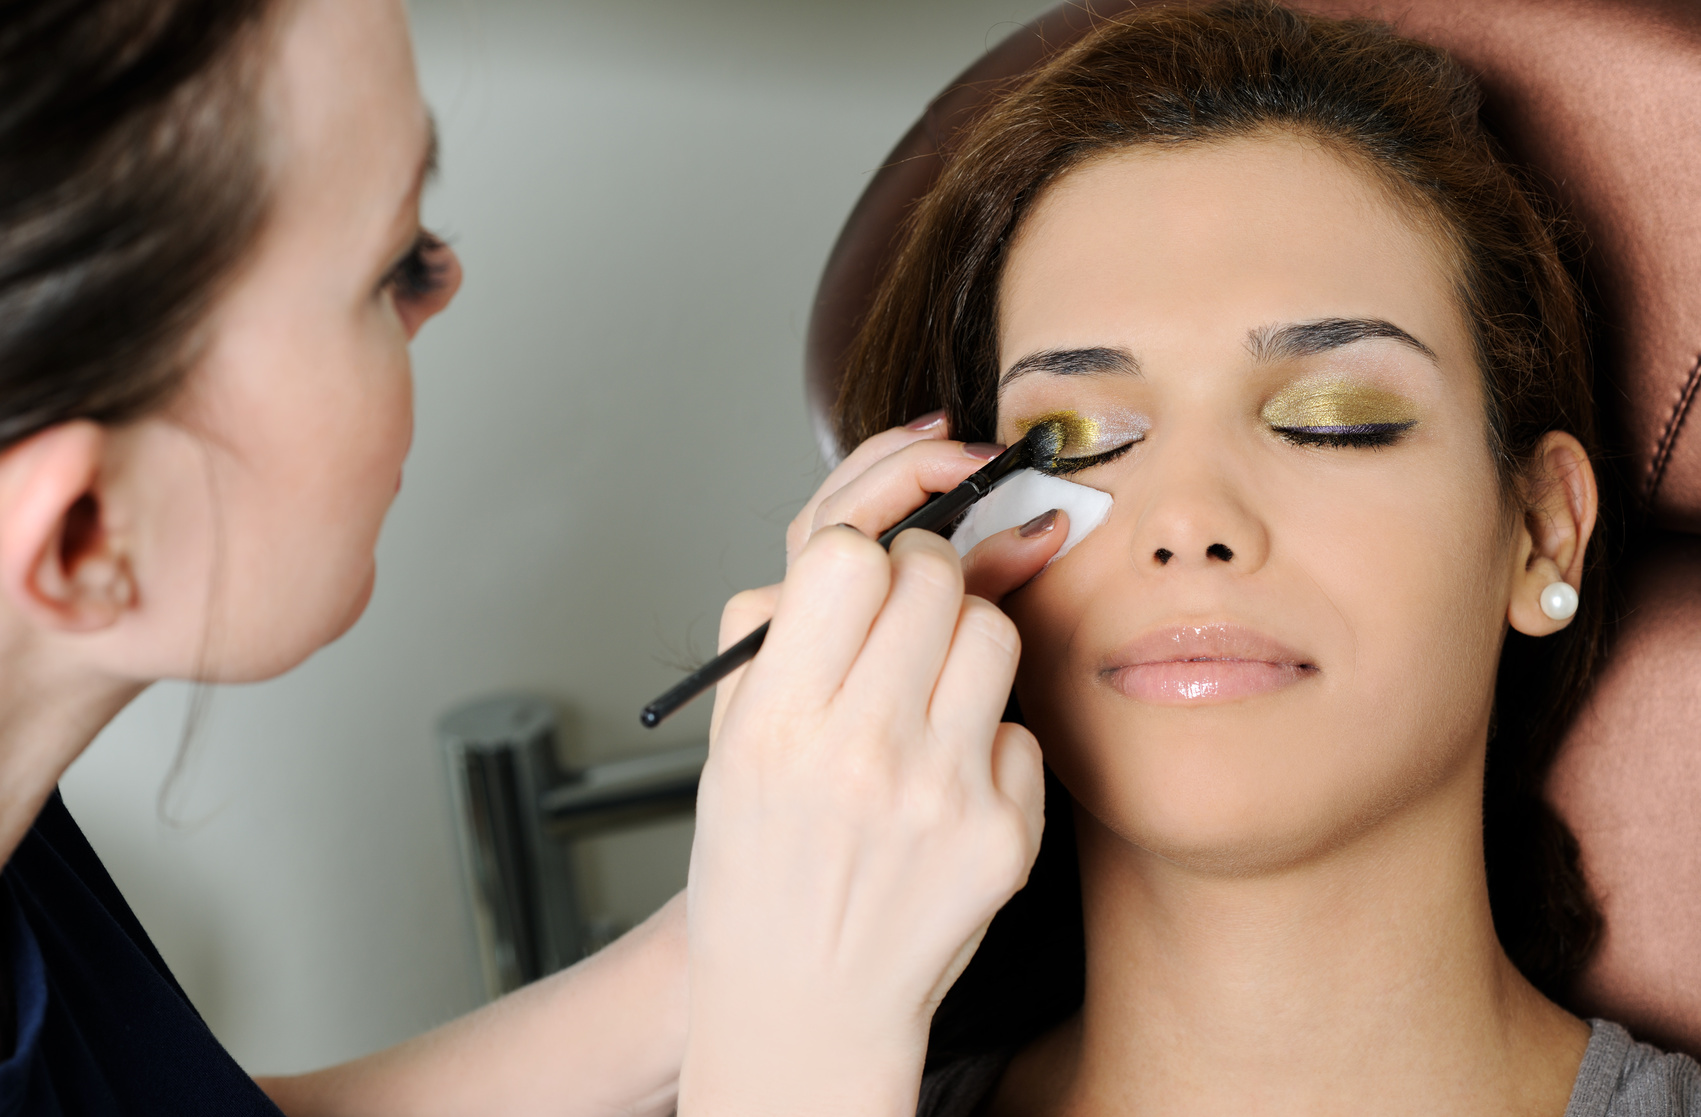 Woman having makeup applied to her eyelids